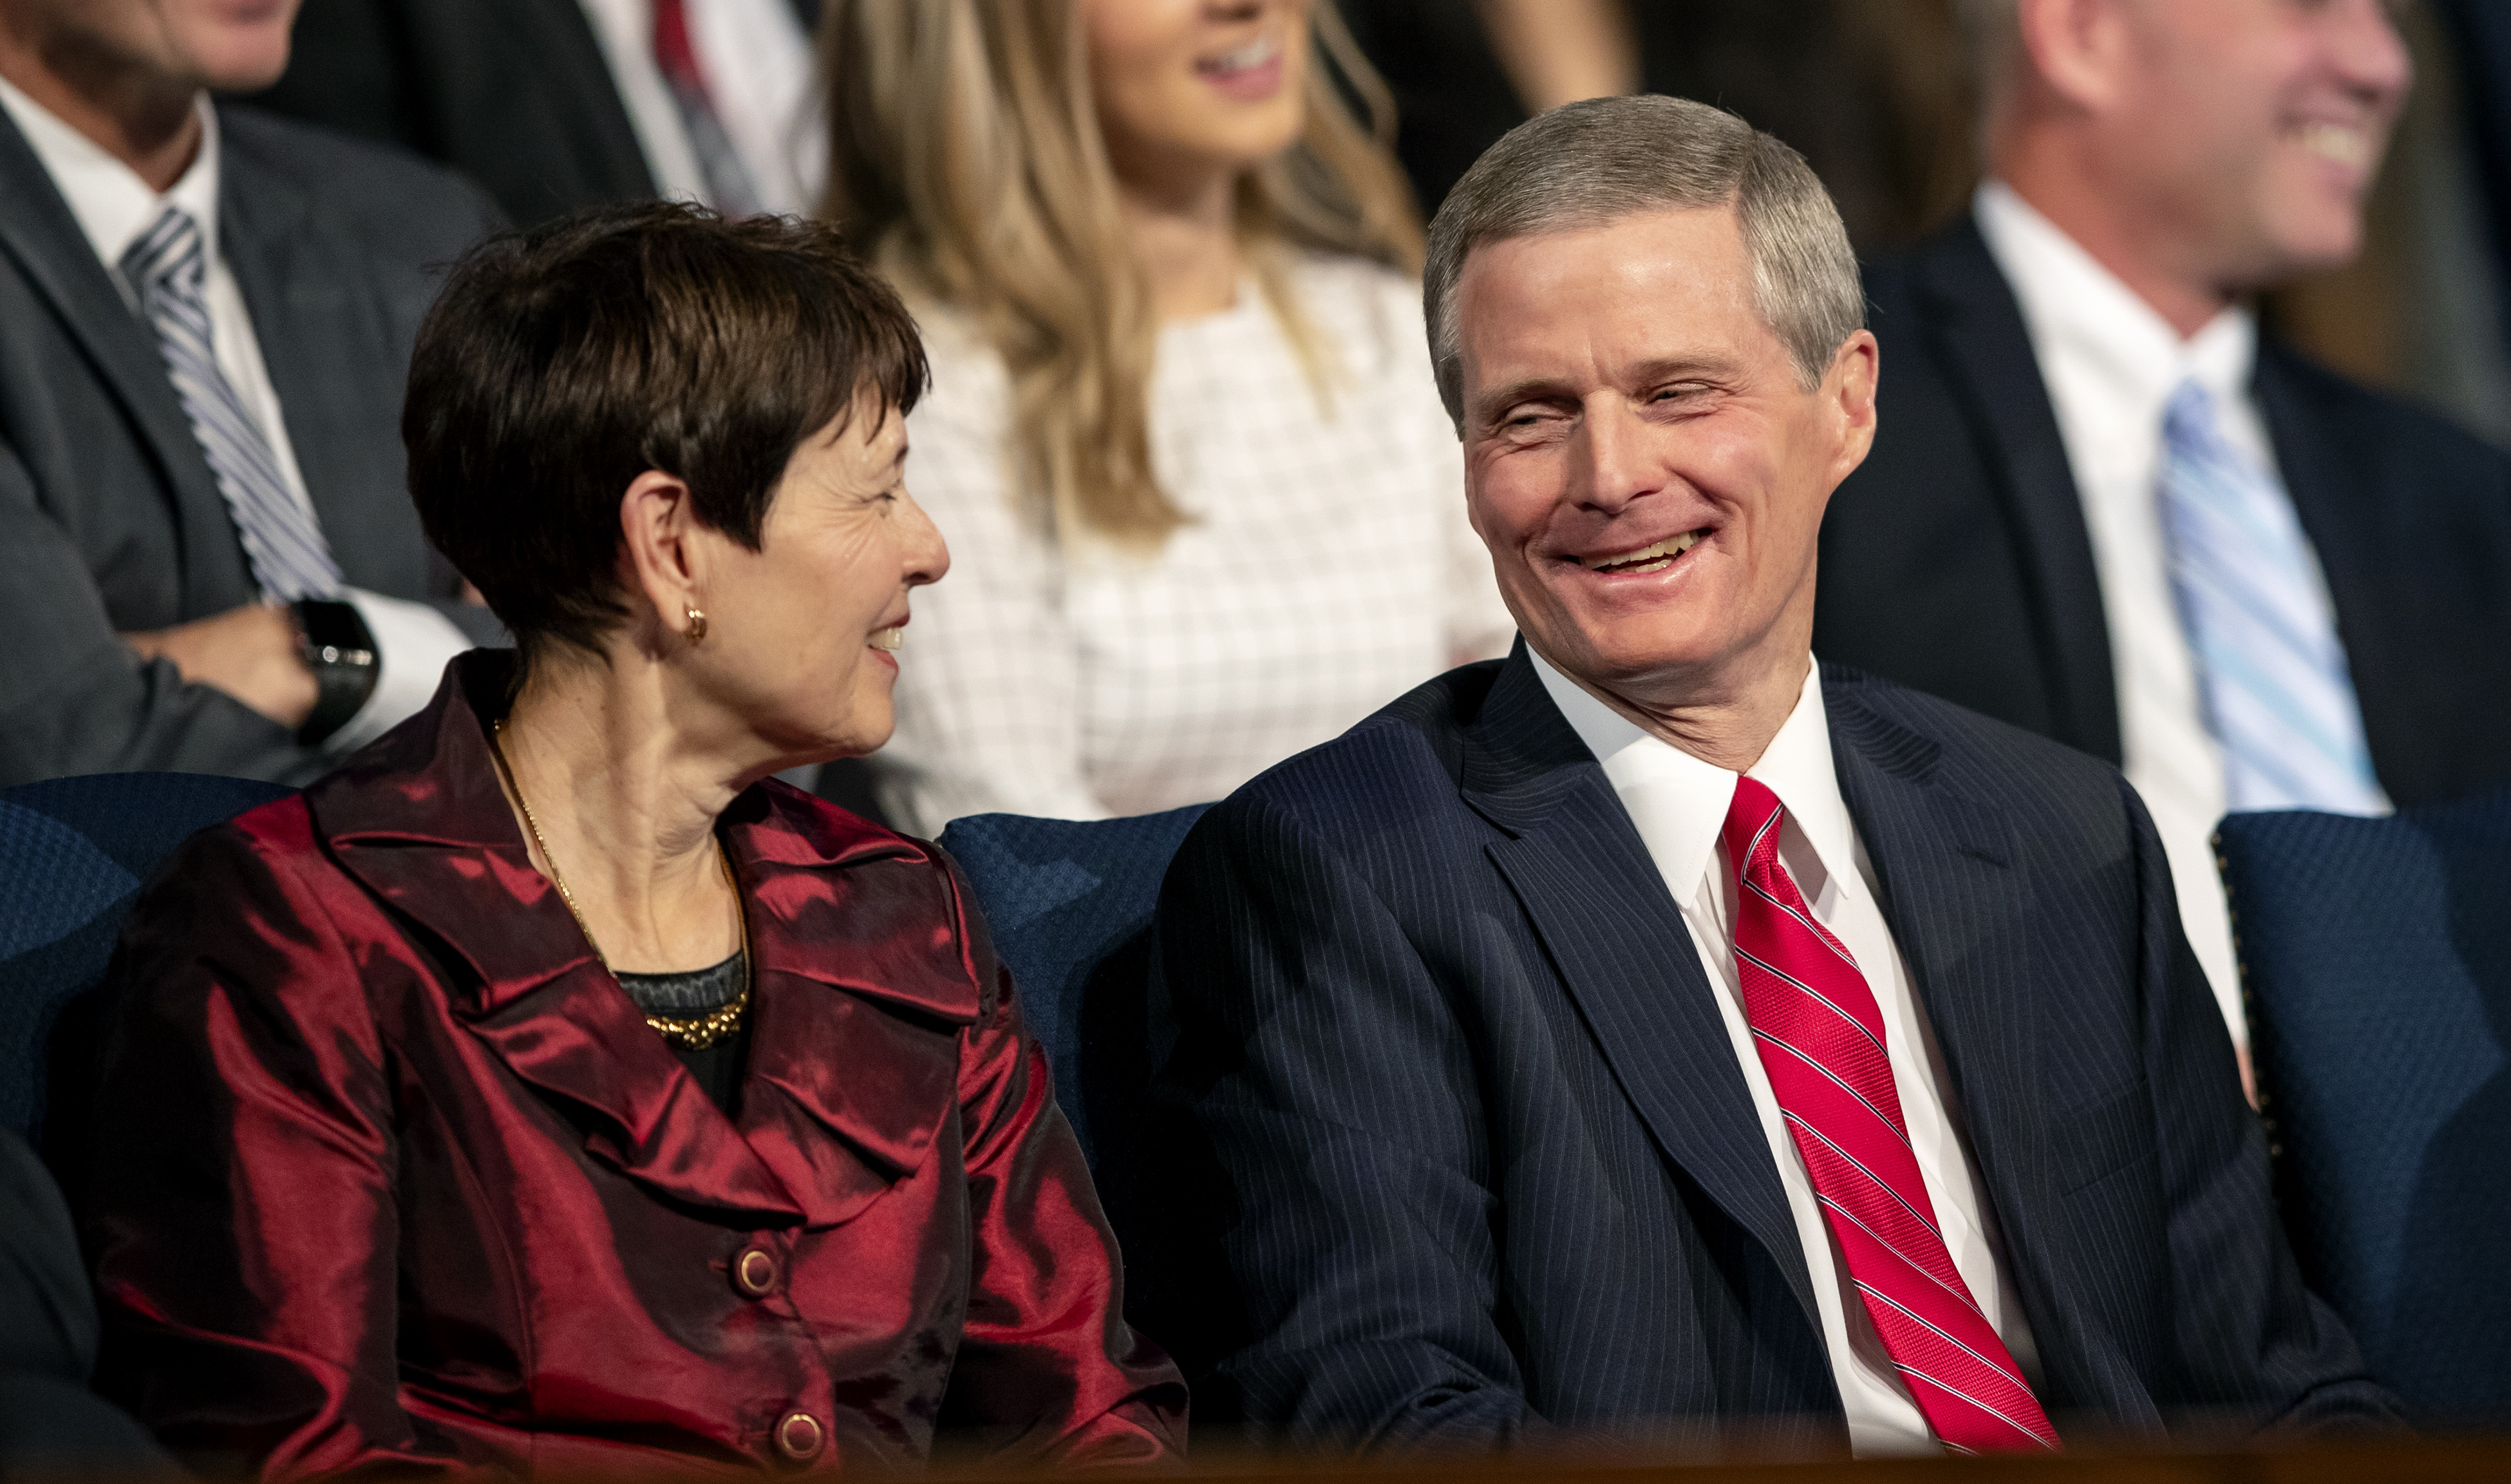 Elder David A. Bednar of the Quorum of the Twelve Apostles of and his wife, Sister Susan Bednar, share a laugh as they attend the campus devotional in the Marriott Center at BYU in Provo on Tuesday, Dec. 4, 2018.